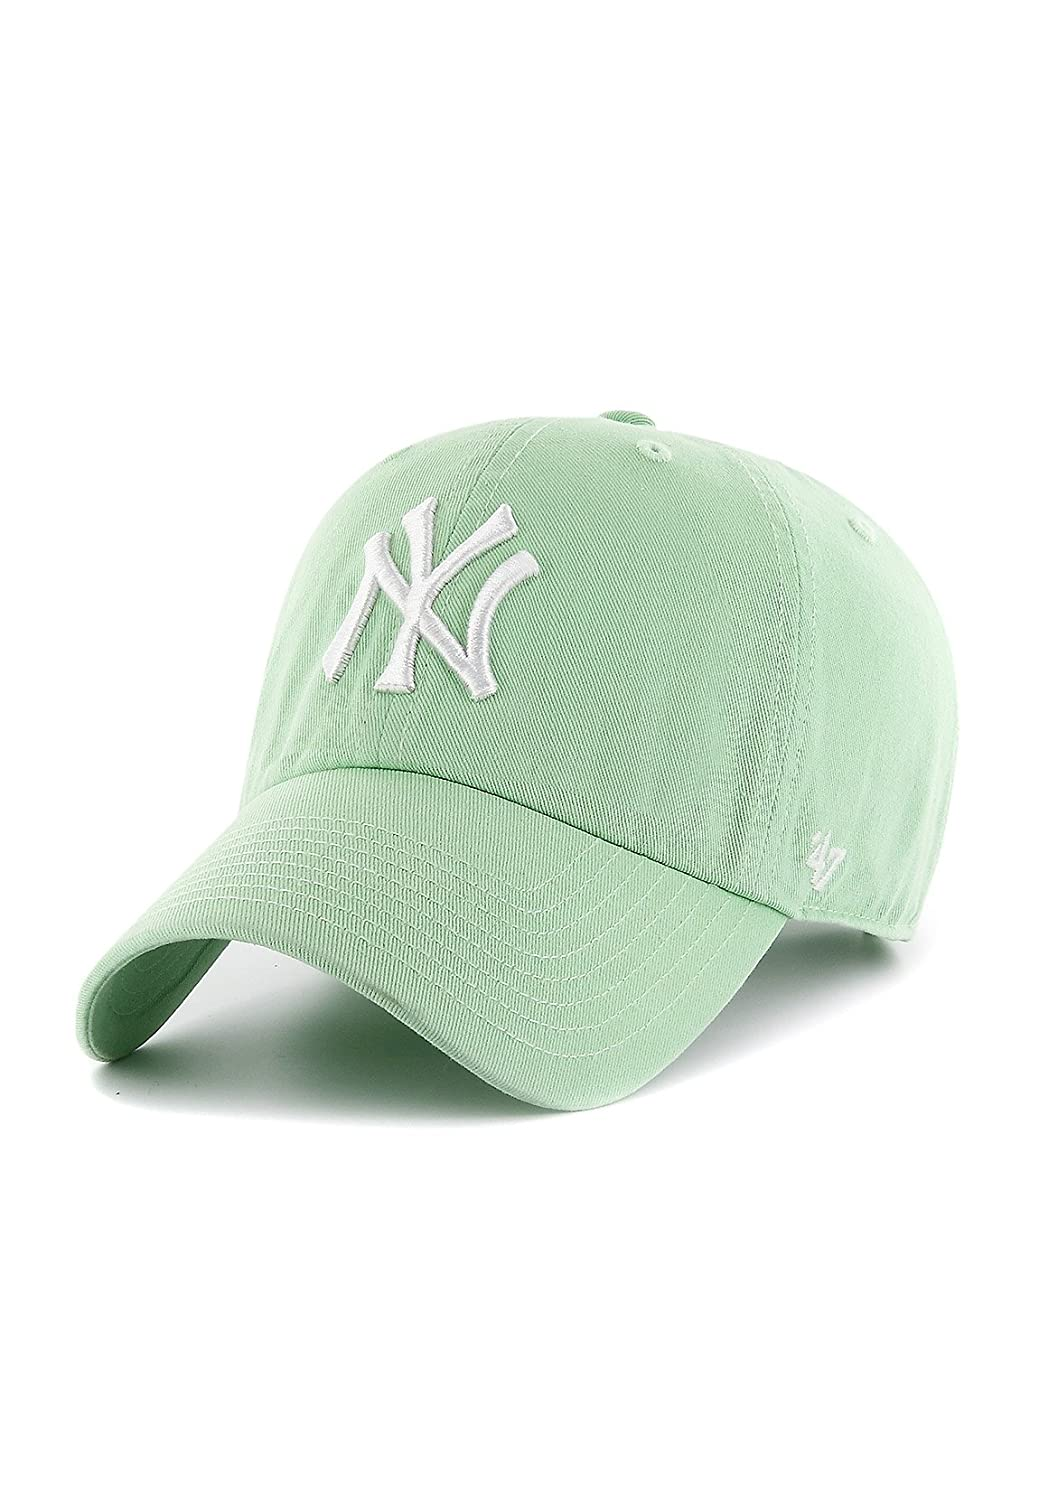 f78136eda6e108 Amazon.com: '47 New York Yankees Dad Hat Brand Pastel Clean Up Slouch Fit  Strapback (Hemlock Green): Clothing